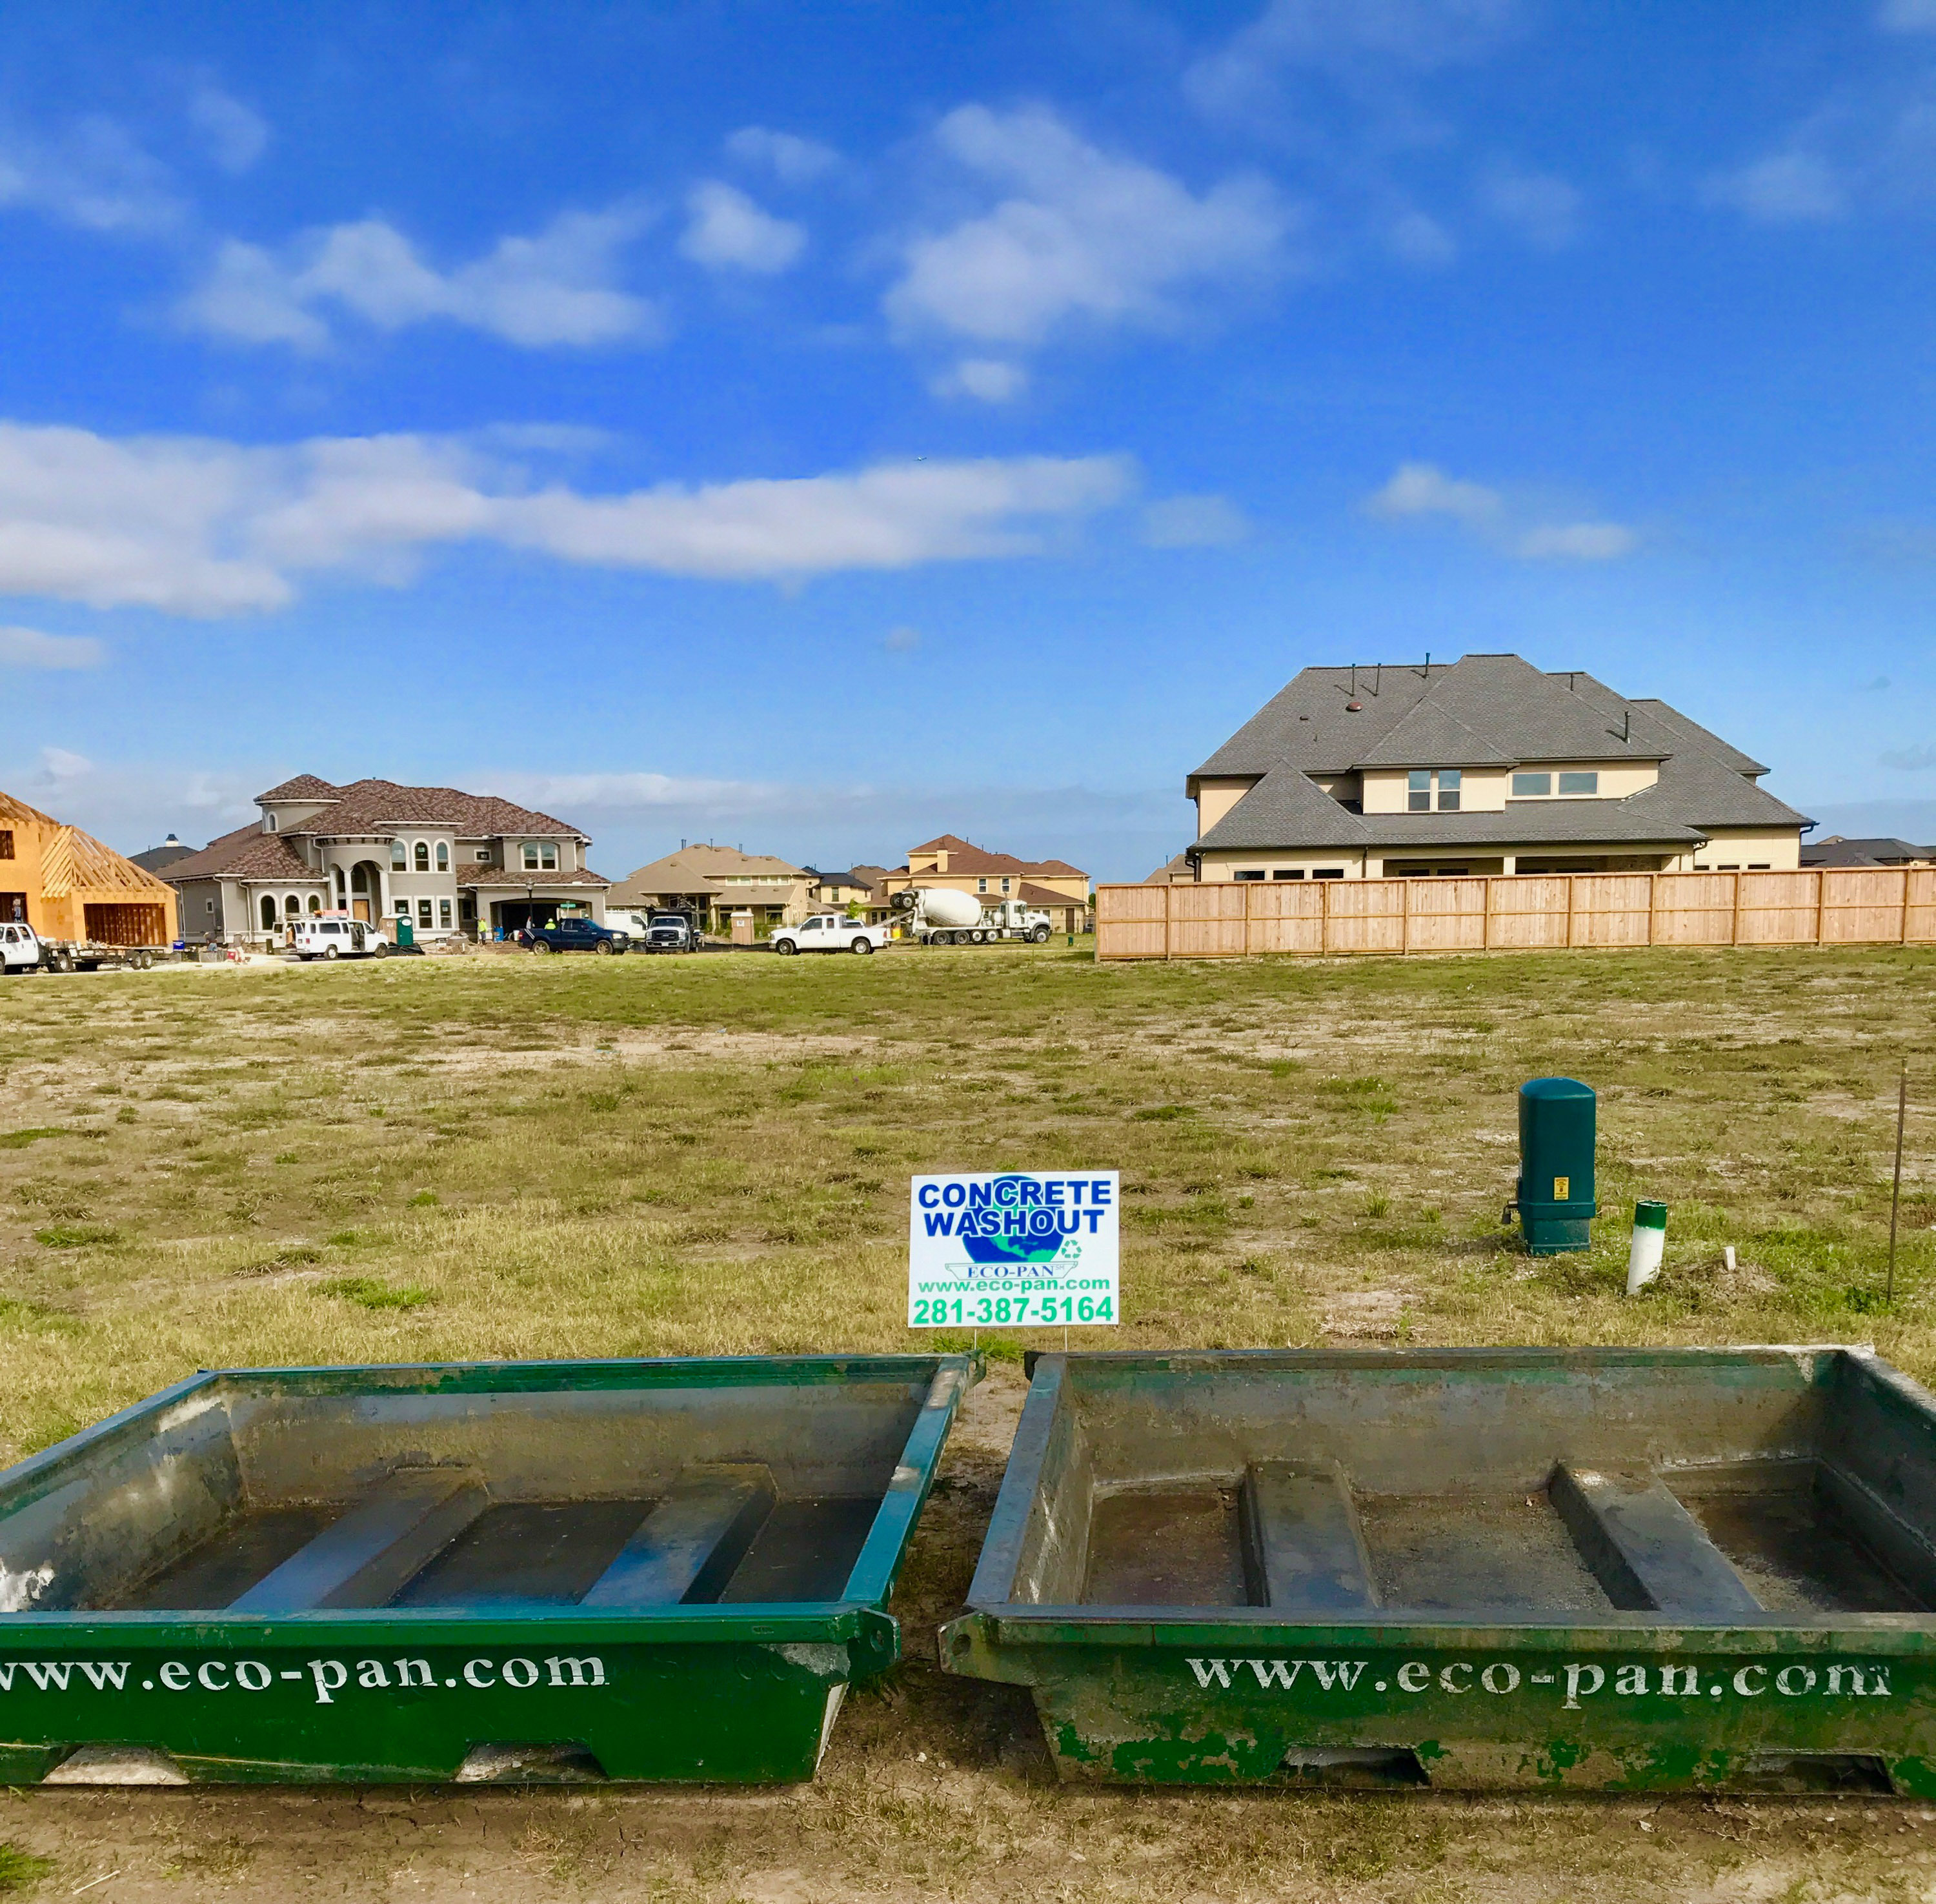 Eco-Pan and David Weekly Homes in Friendswood, TX